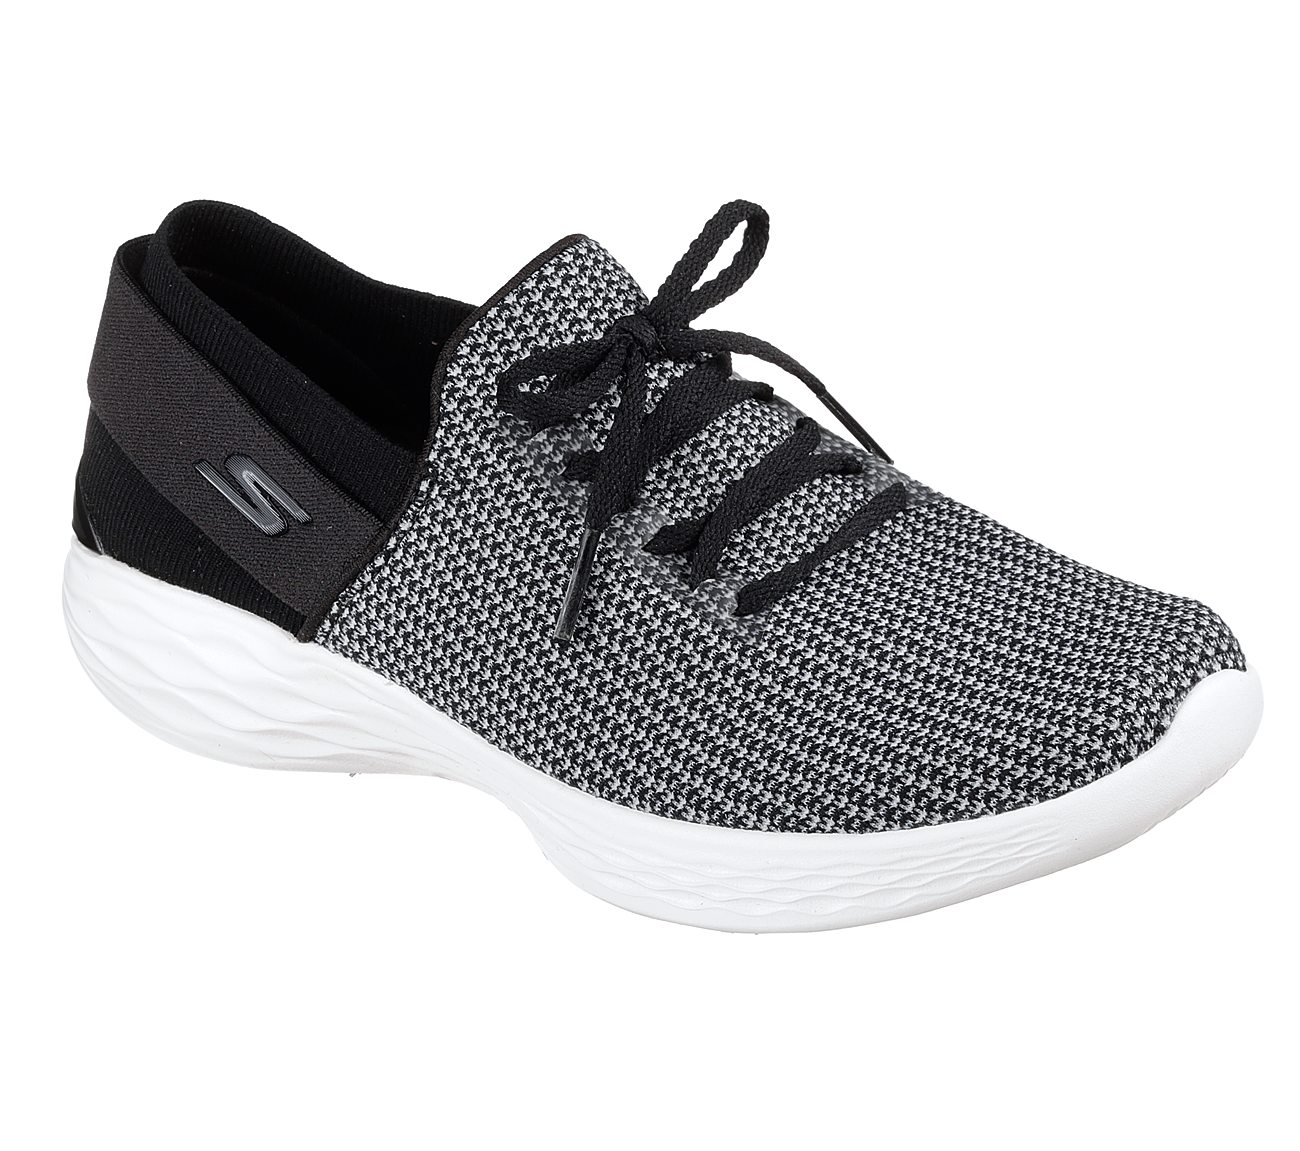 skechers shoes black and white